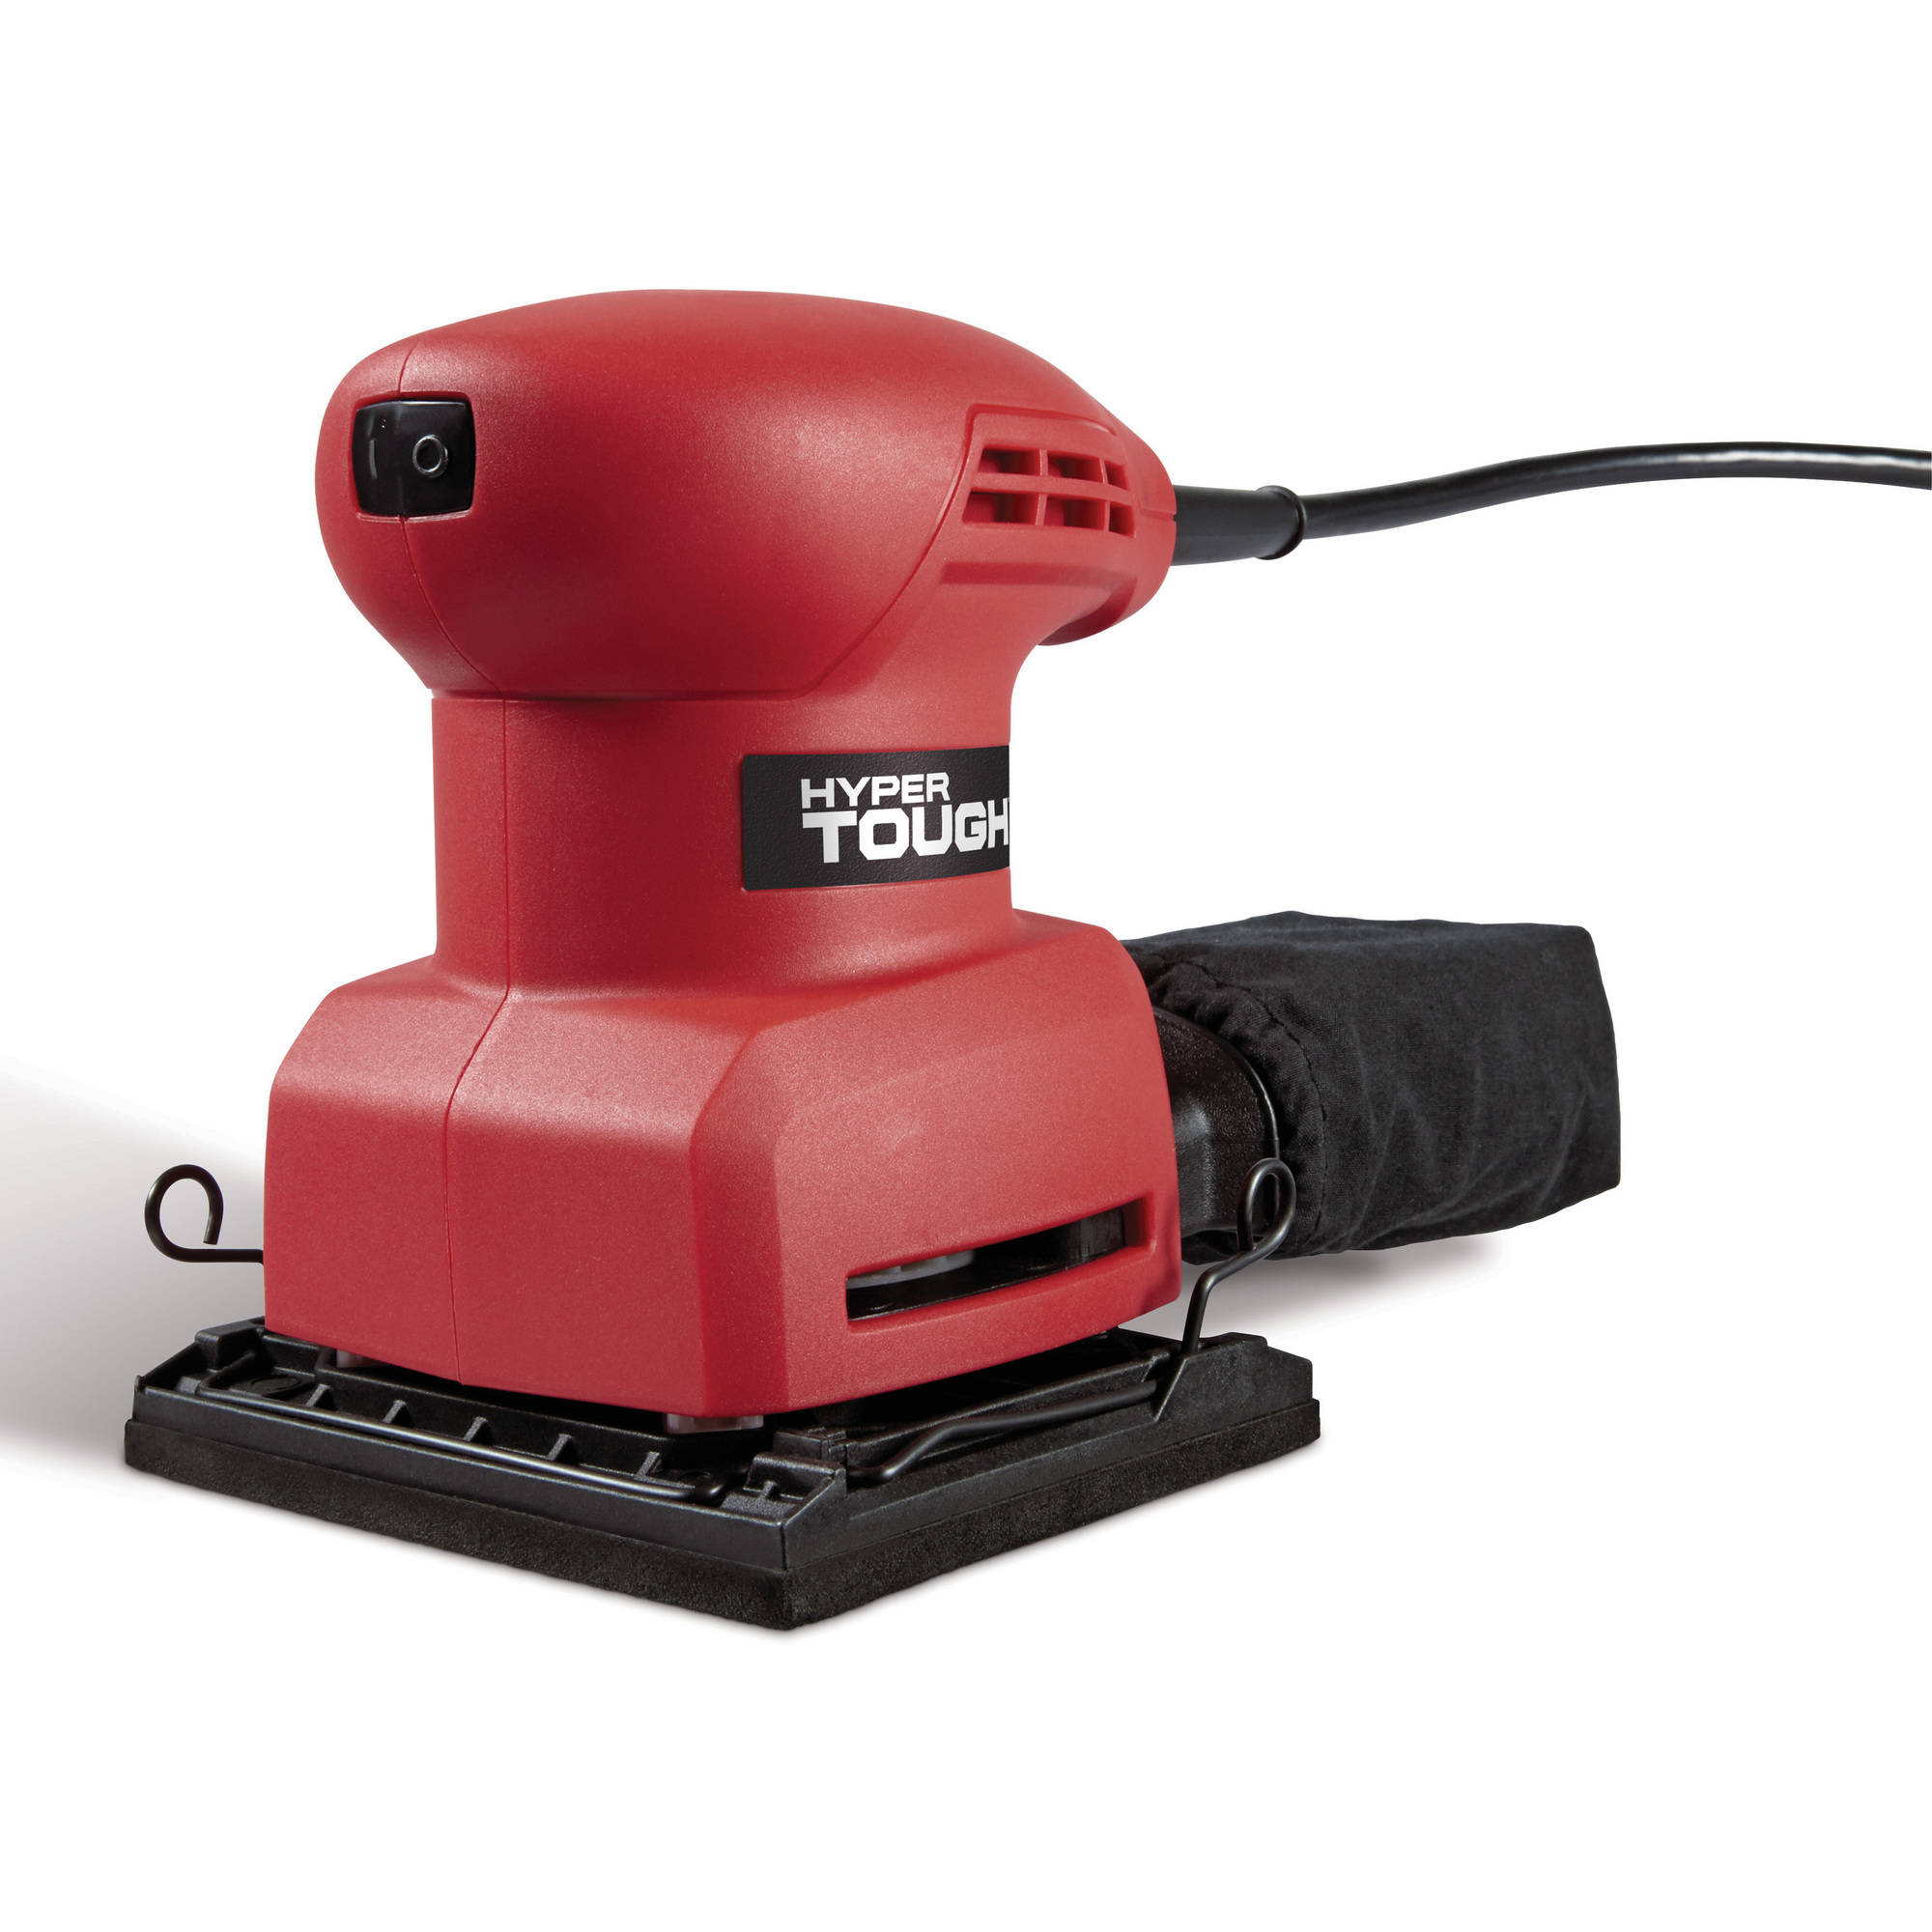 Hyper Tough 2.0Amp 1/4 Sheet Sander